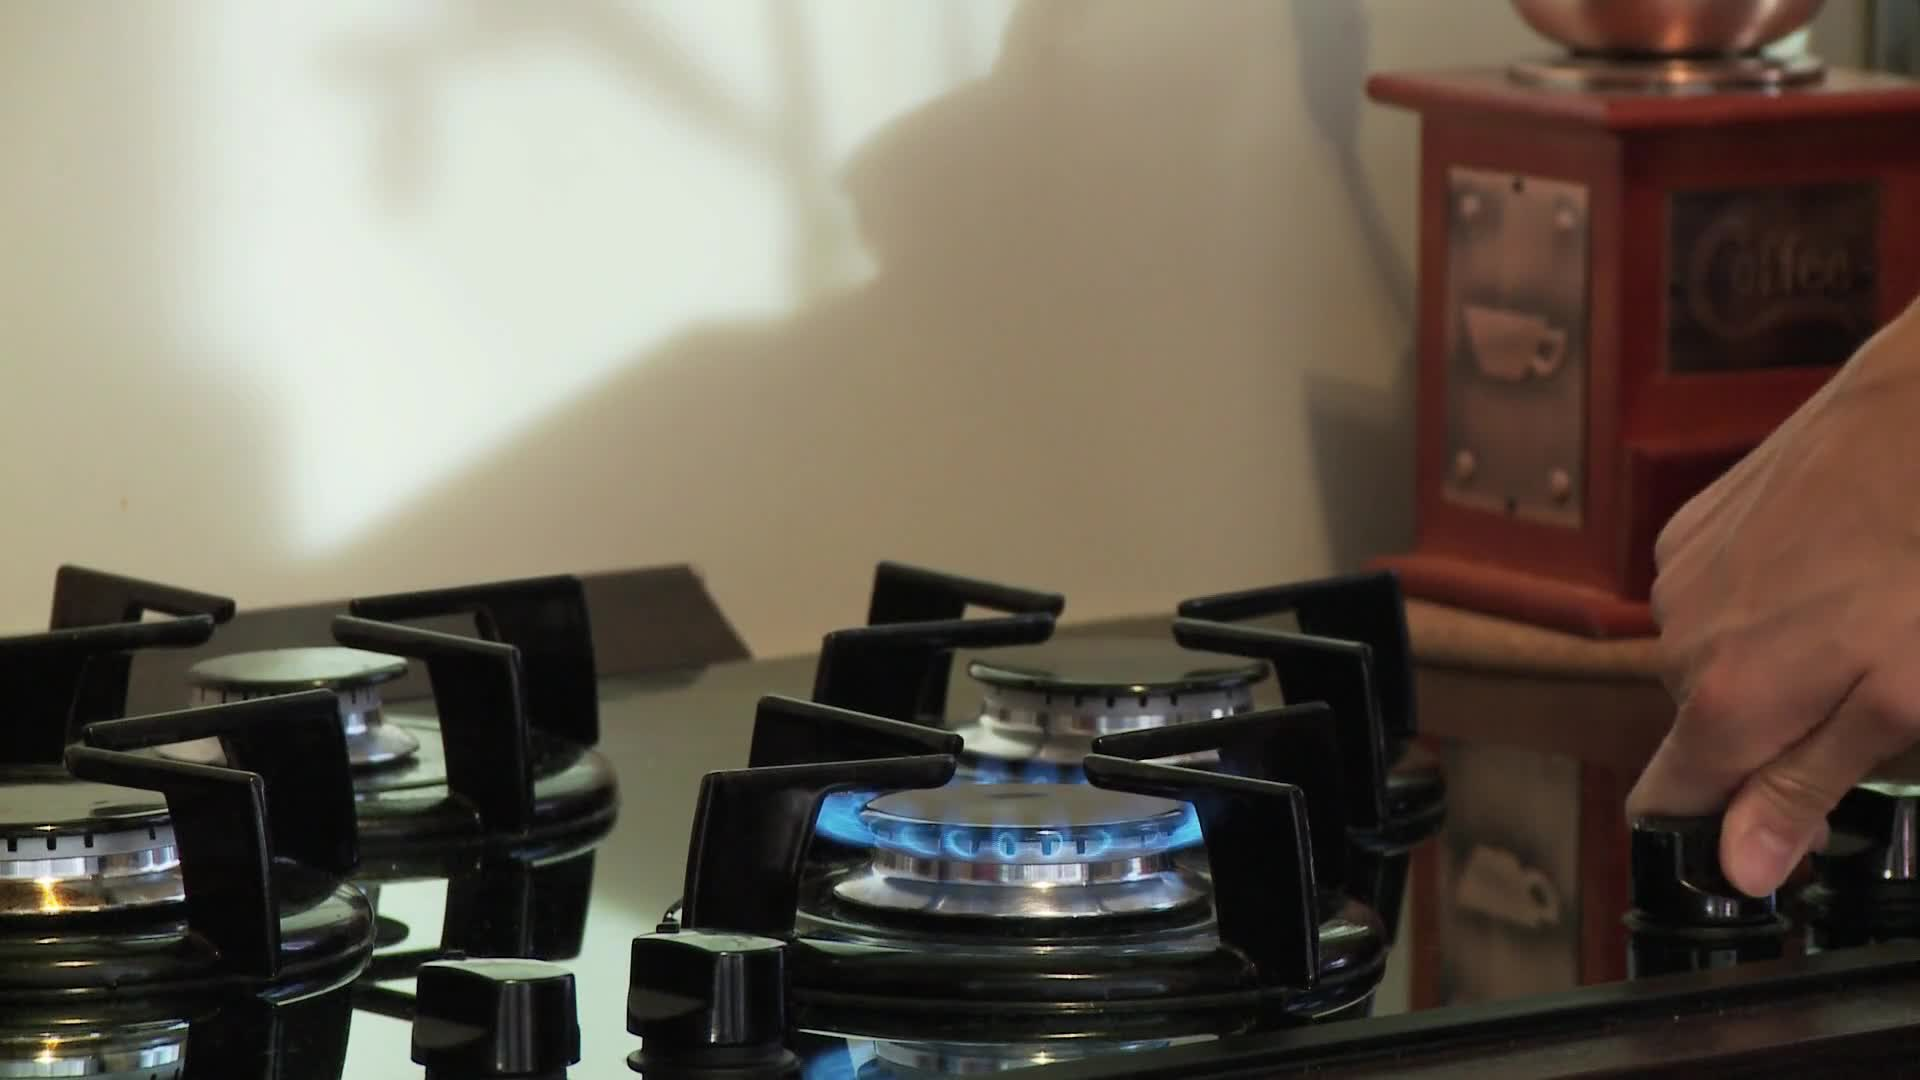 Gas stove turn on flame blue